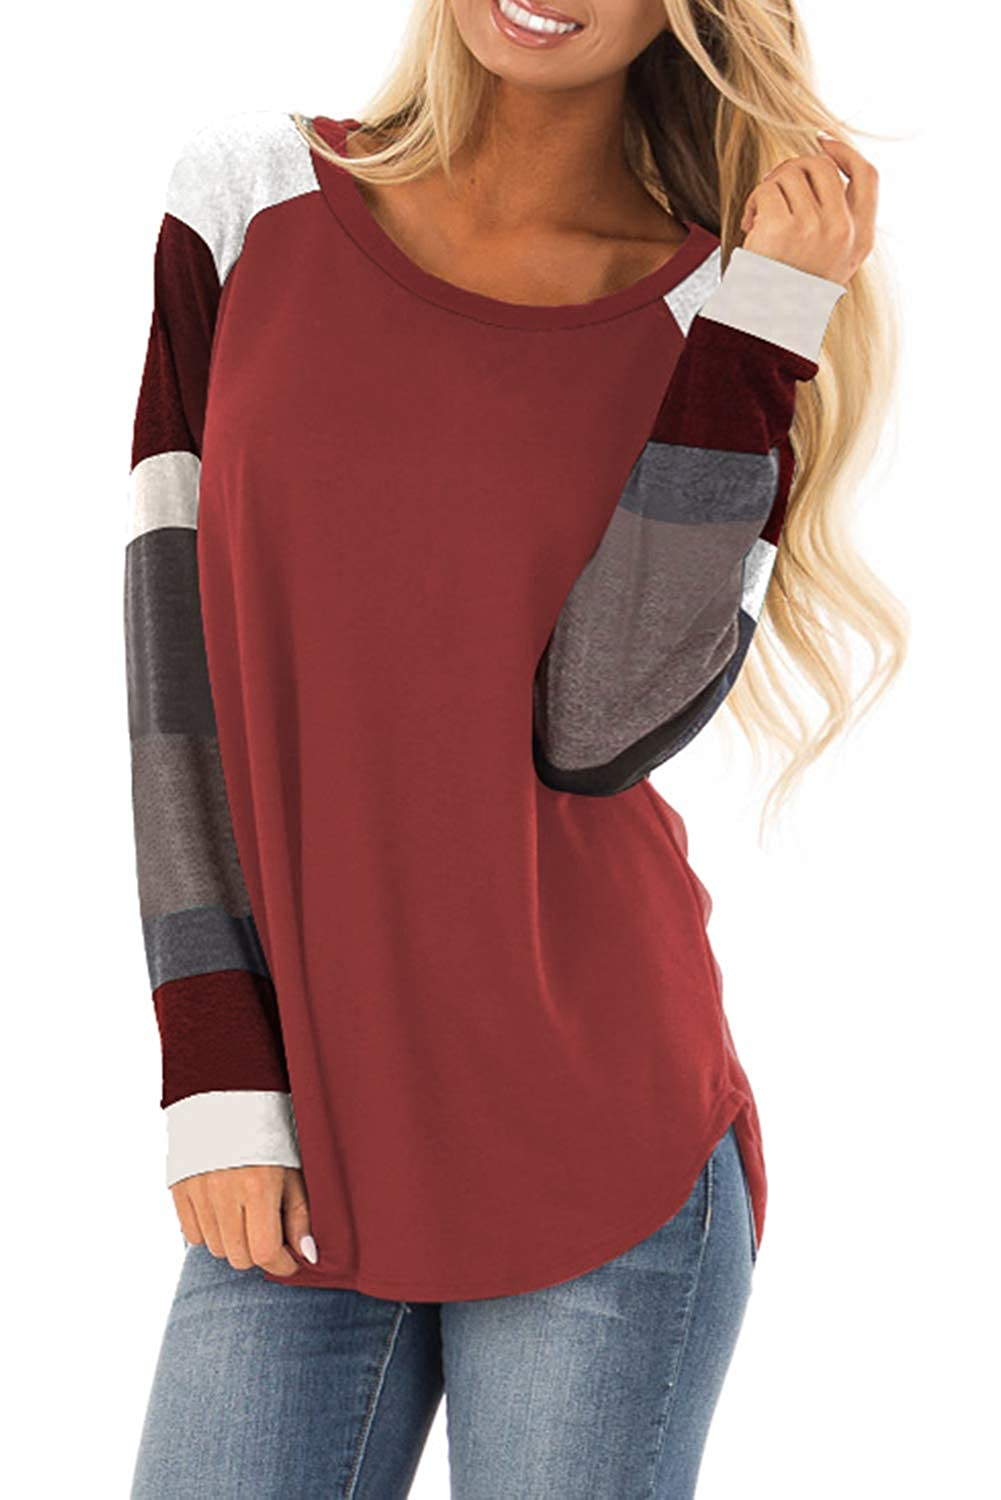 Chase Secret Womens Color Block Long Sleeve Tunic Sweatshirts Tops Casual Blouses (S-XXL) MDS251469